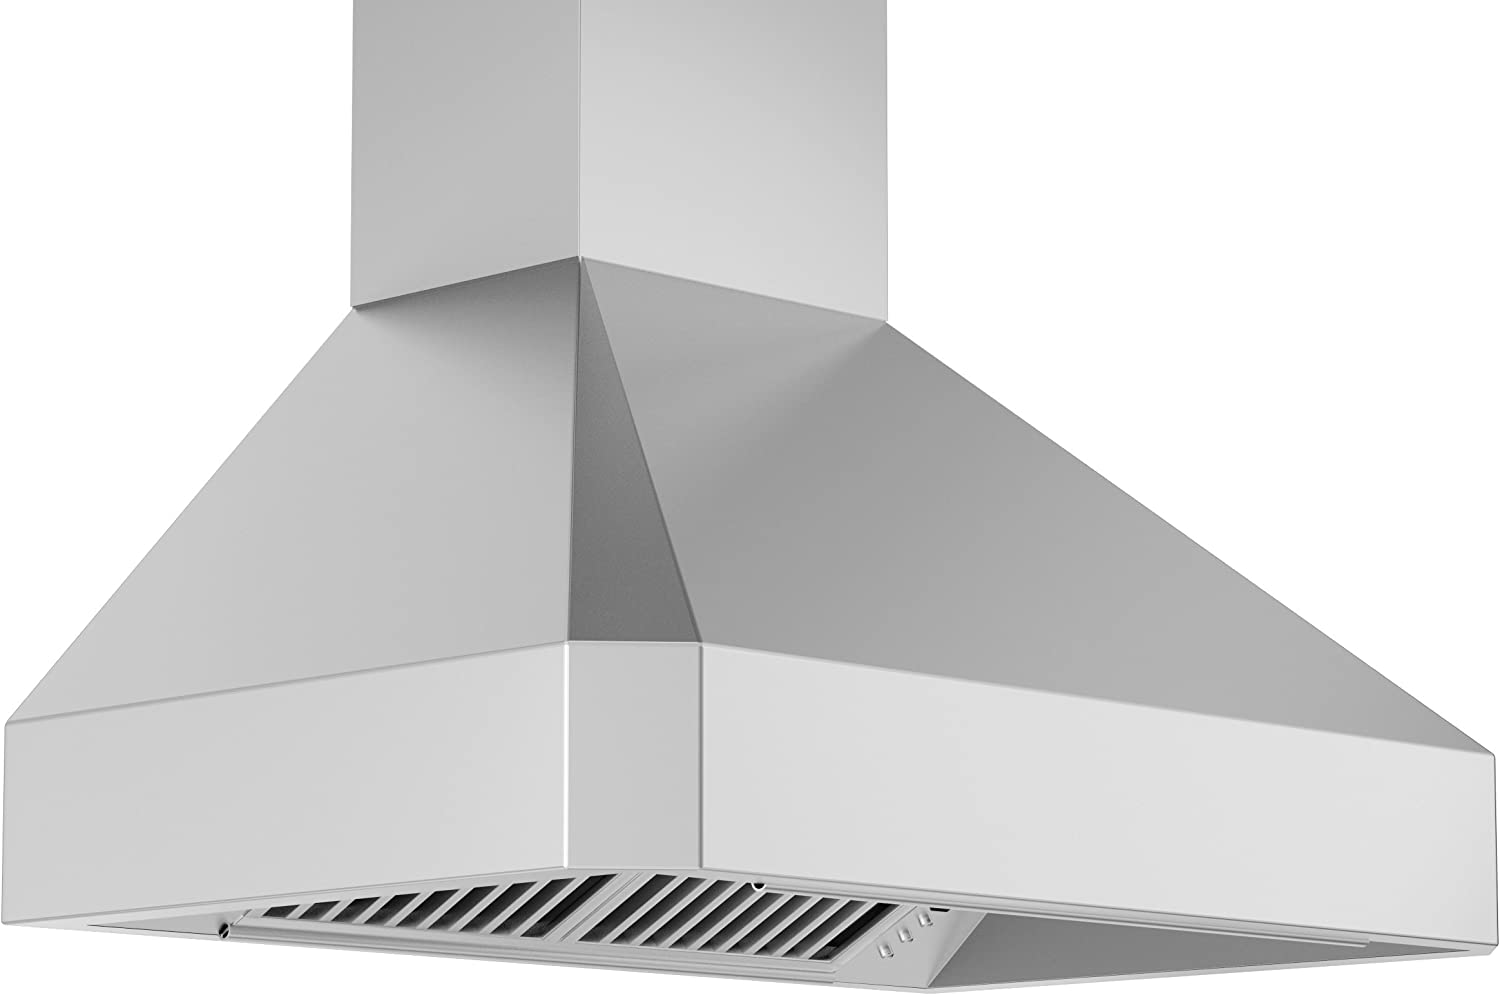 ZLINE 30 in. Wall Mount Range Hood in Stainless Steel (455-30)